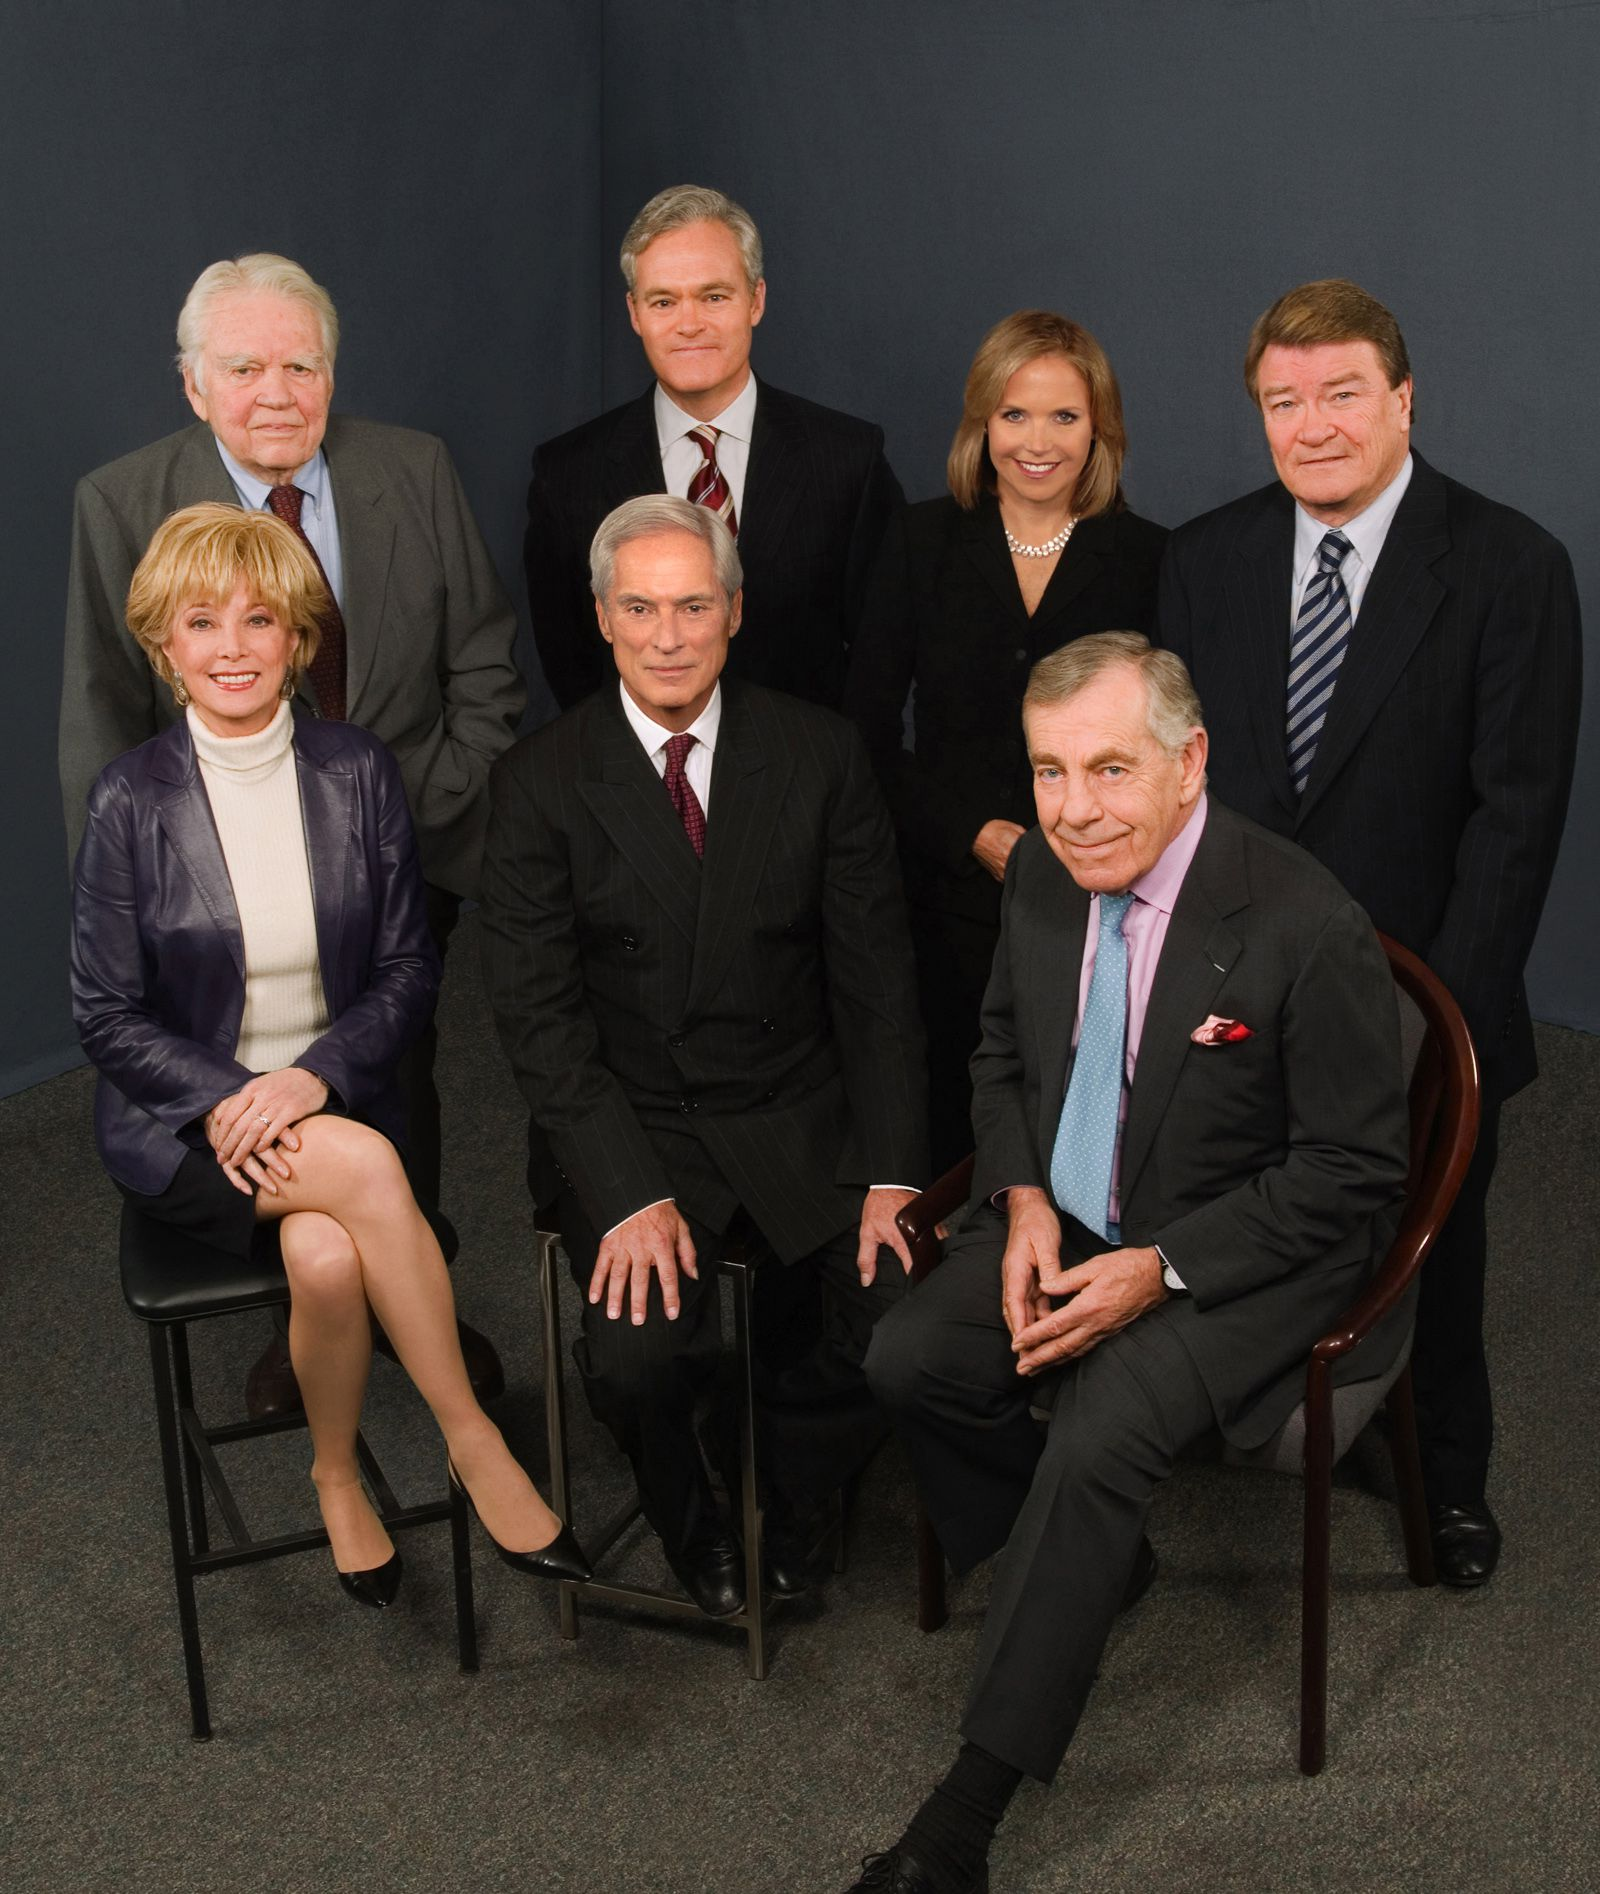 A 2006 photograph of 60 Minutes correspondents and Andy Rooney together for the prime-time news magazine's 39th season. Standing, from left, are Andy Rooney, Scott Pelley, Katie Couric and Steve Kroft. Seated, are Lesley Stahl, Bob Simon and Morley Safer.